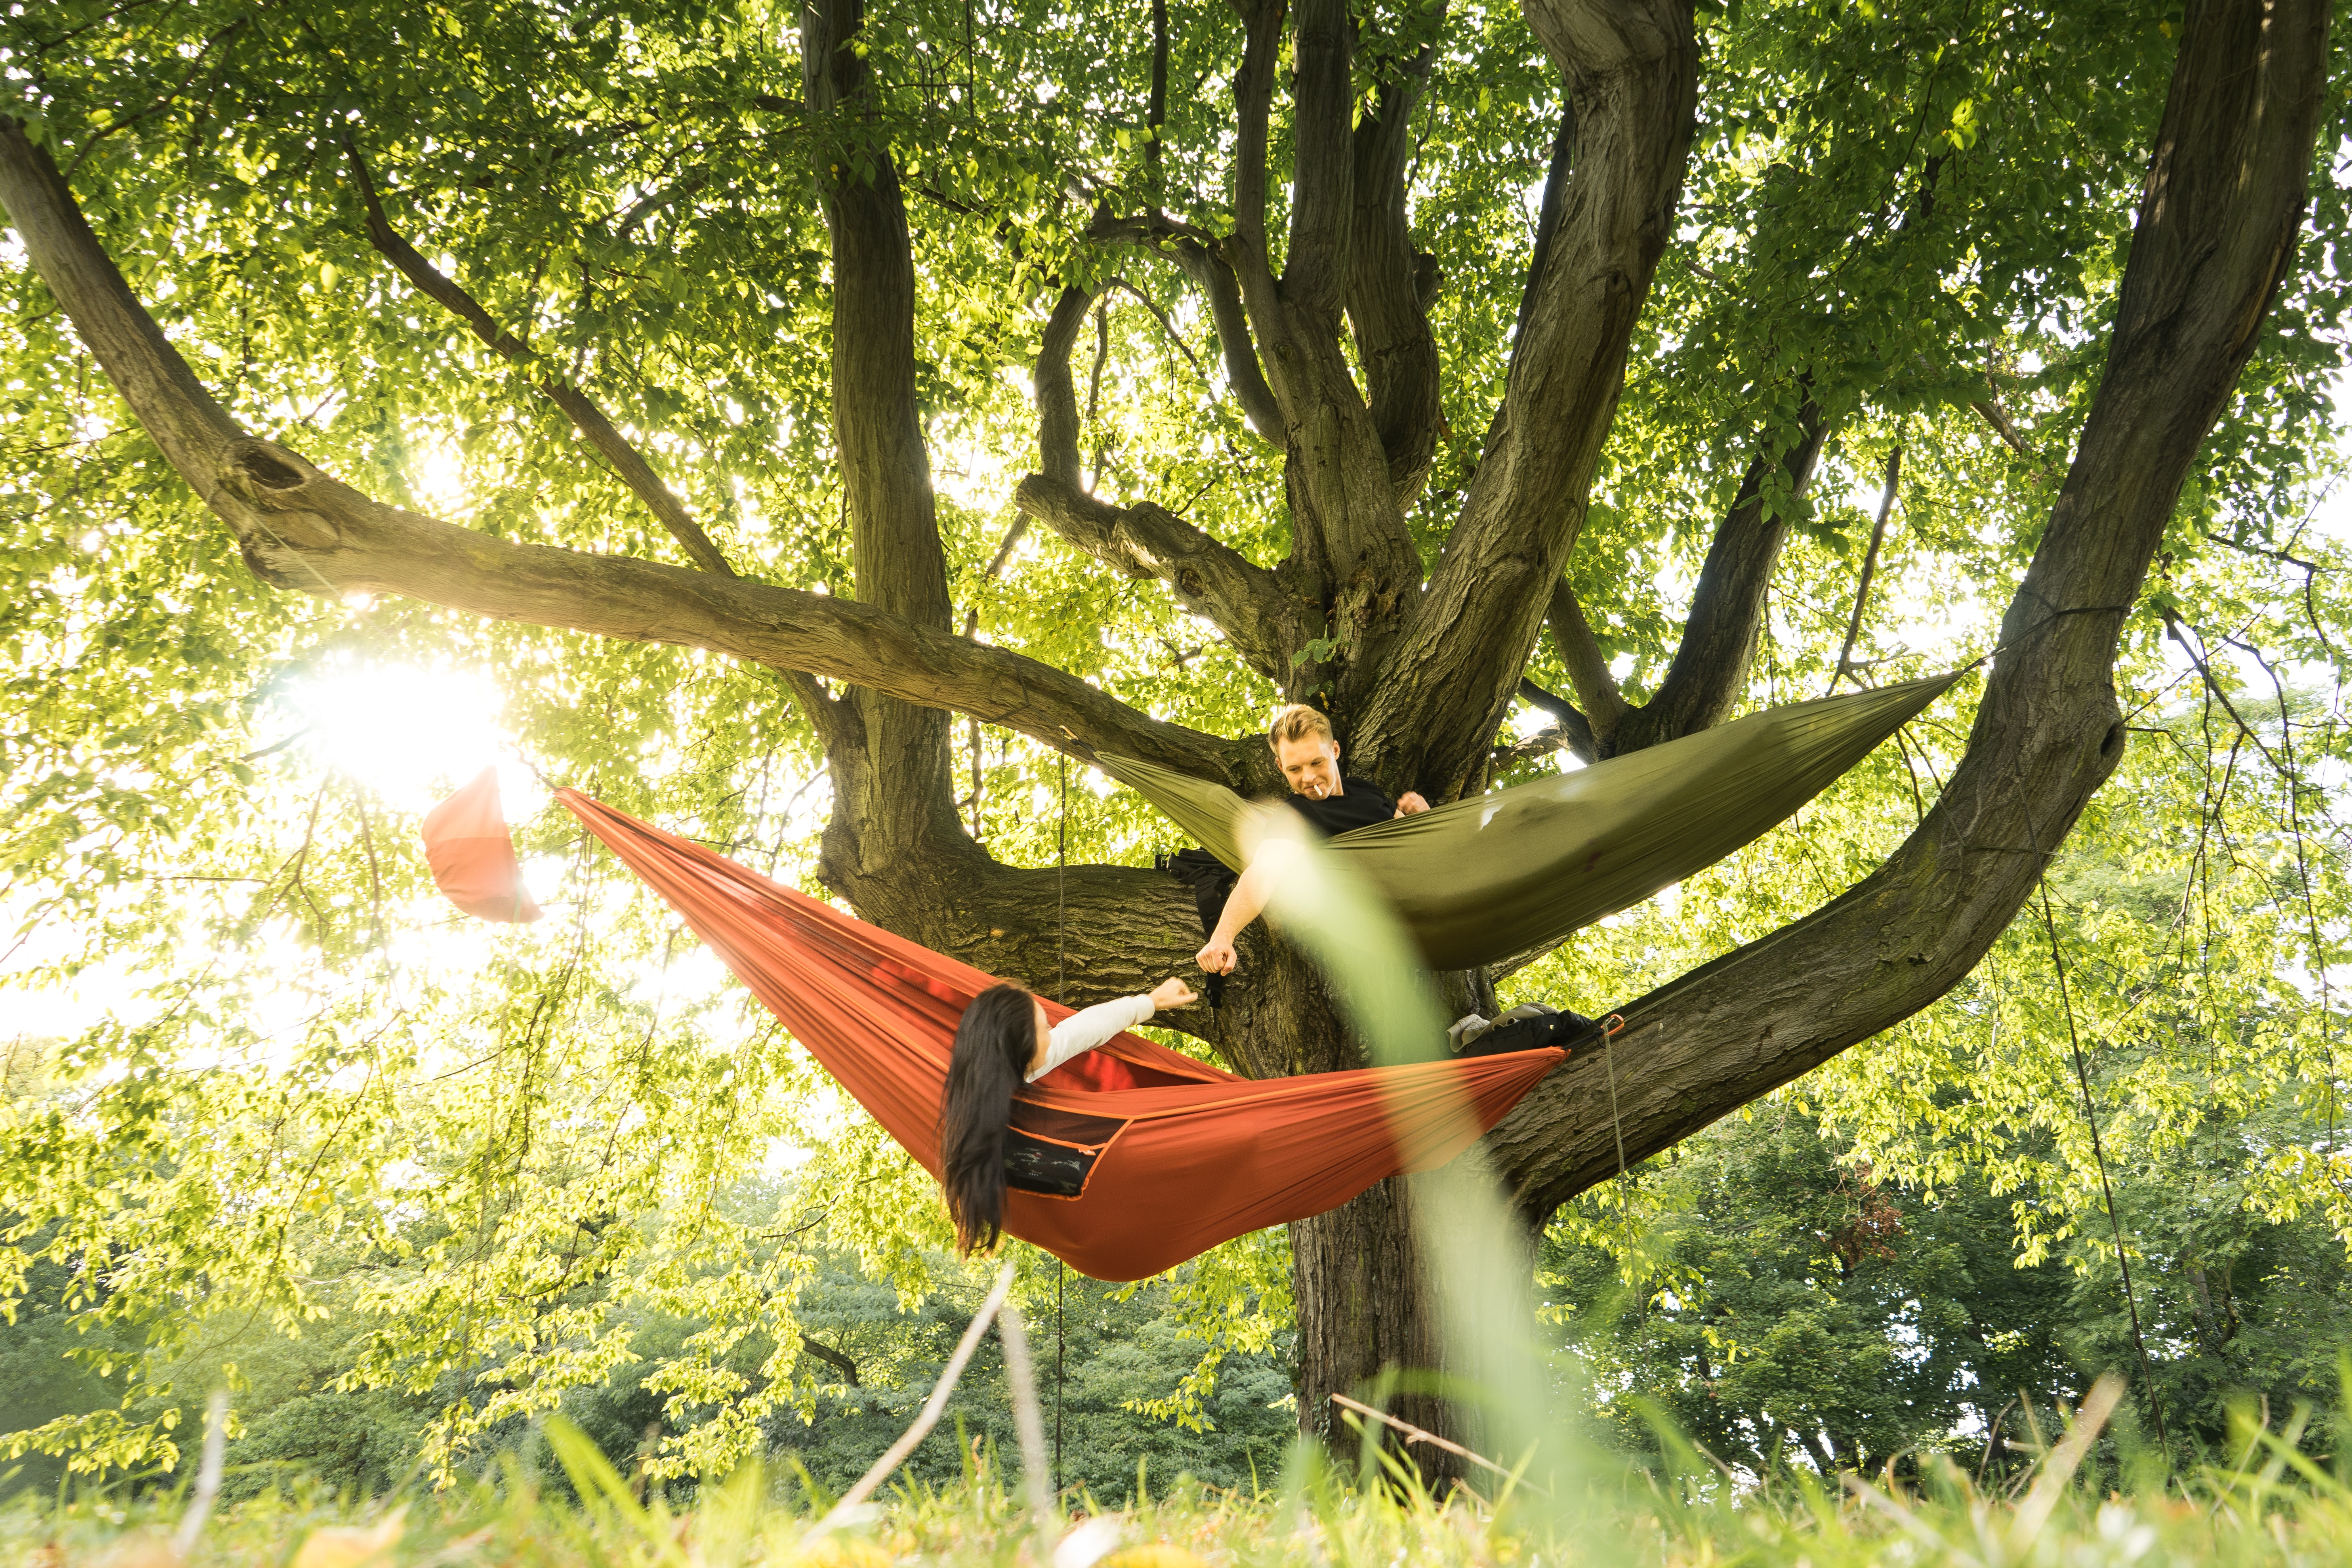 two person on hammock on tree